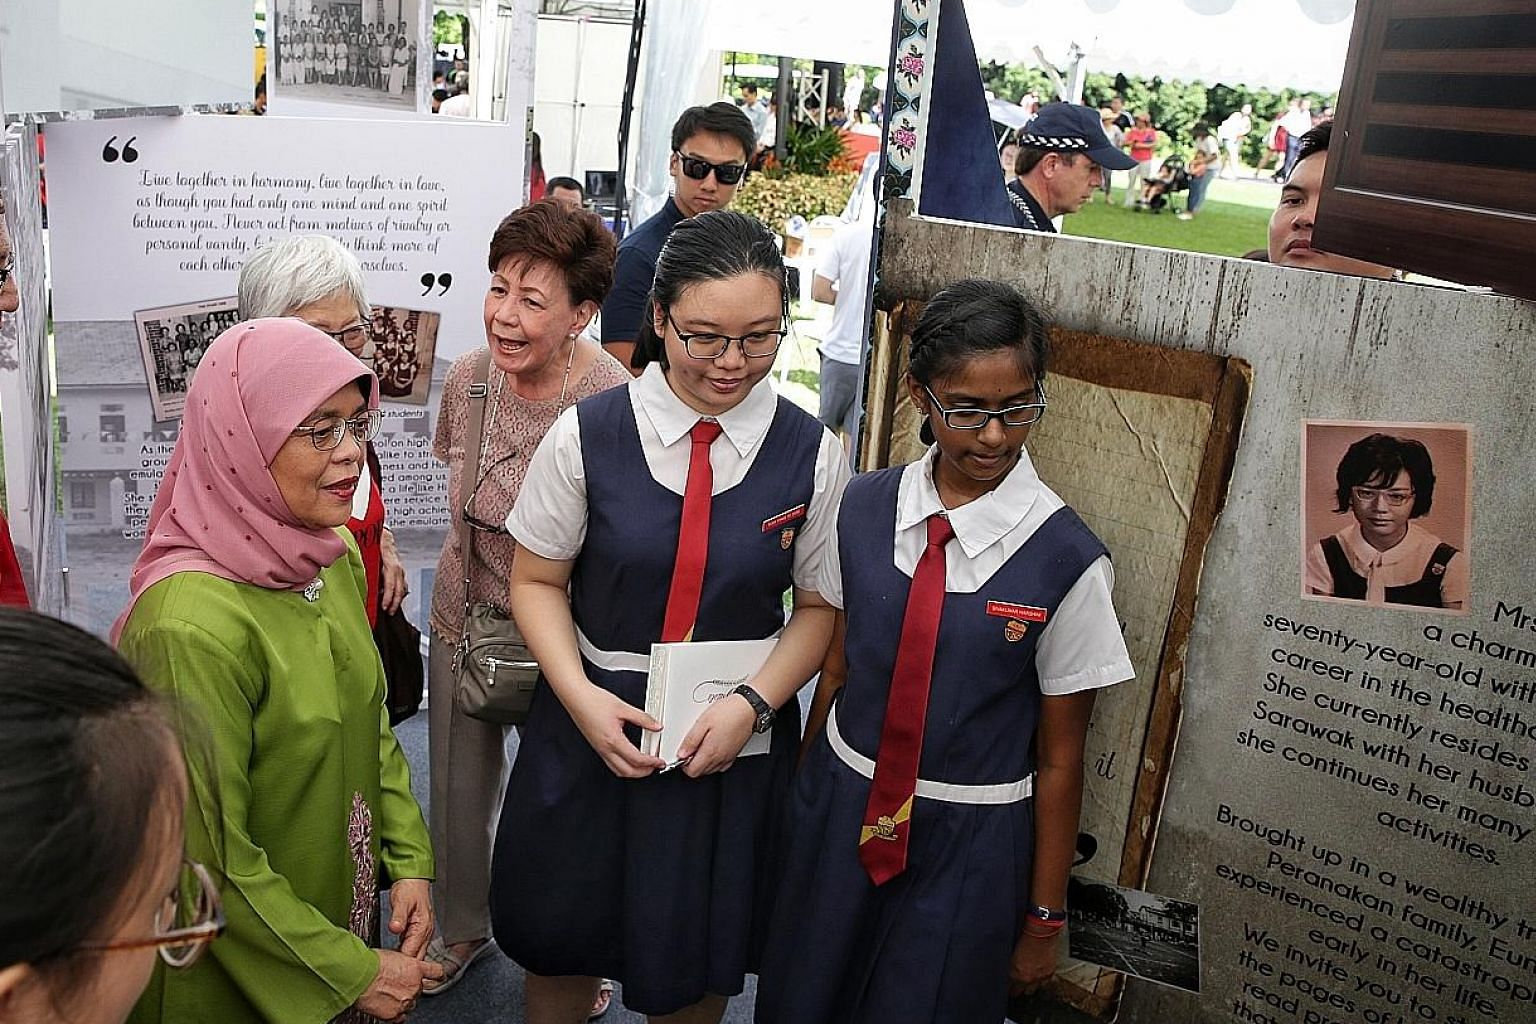 Above: President Halimah Yacob visiting the booth of the Paya Lebar Methodist Girls' School (Secondary) at the Istana open house yesterday. It was among several booths set up in conjunction with Singapore's bicentenary and showcased stories of how ed